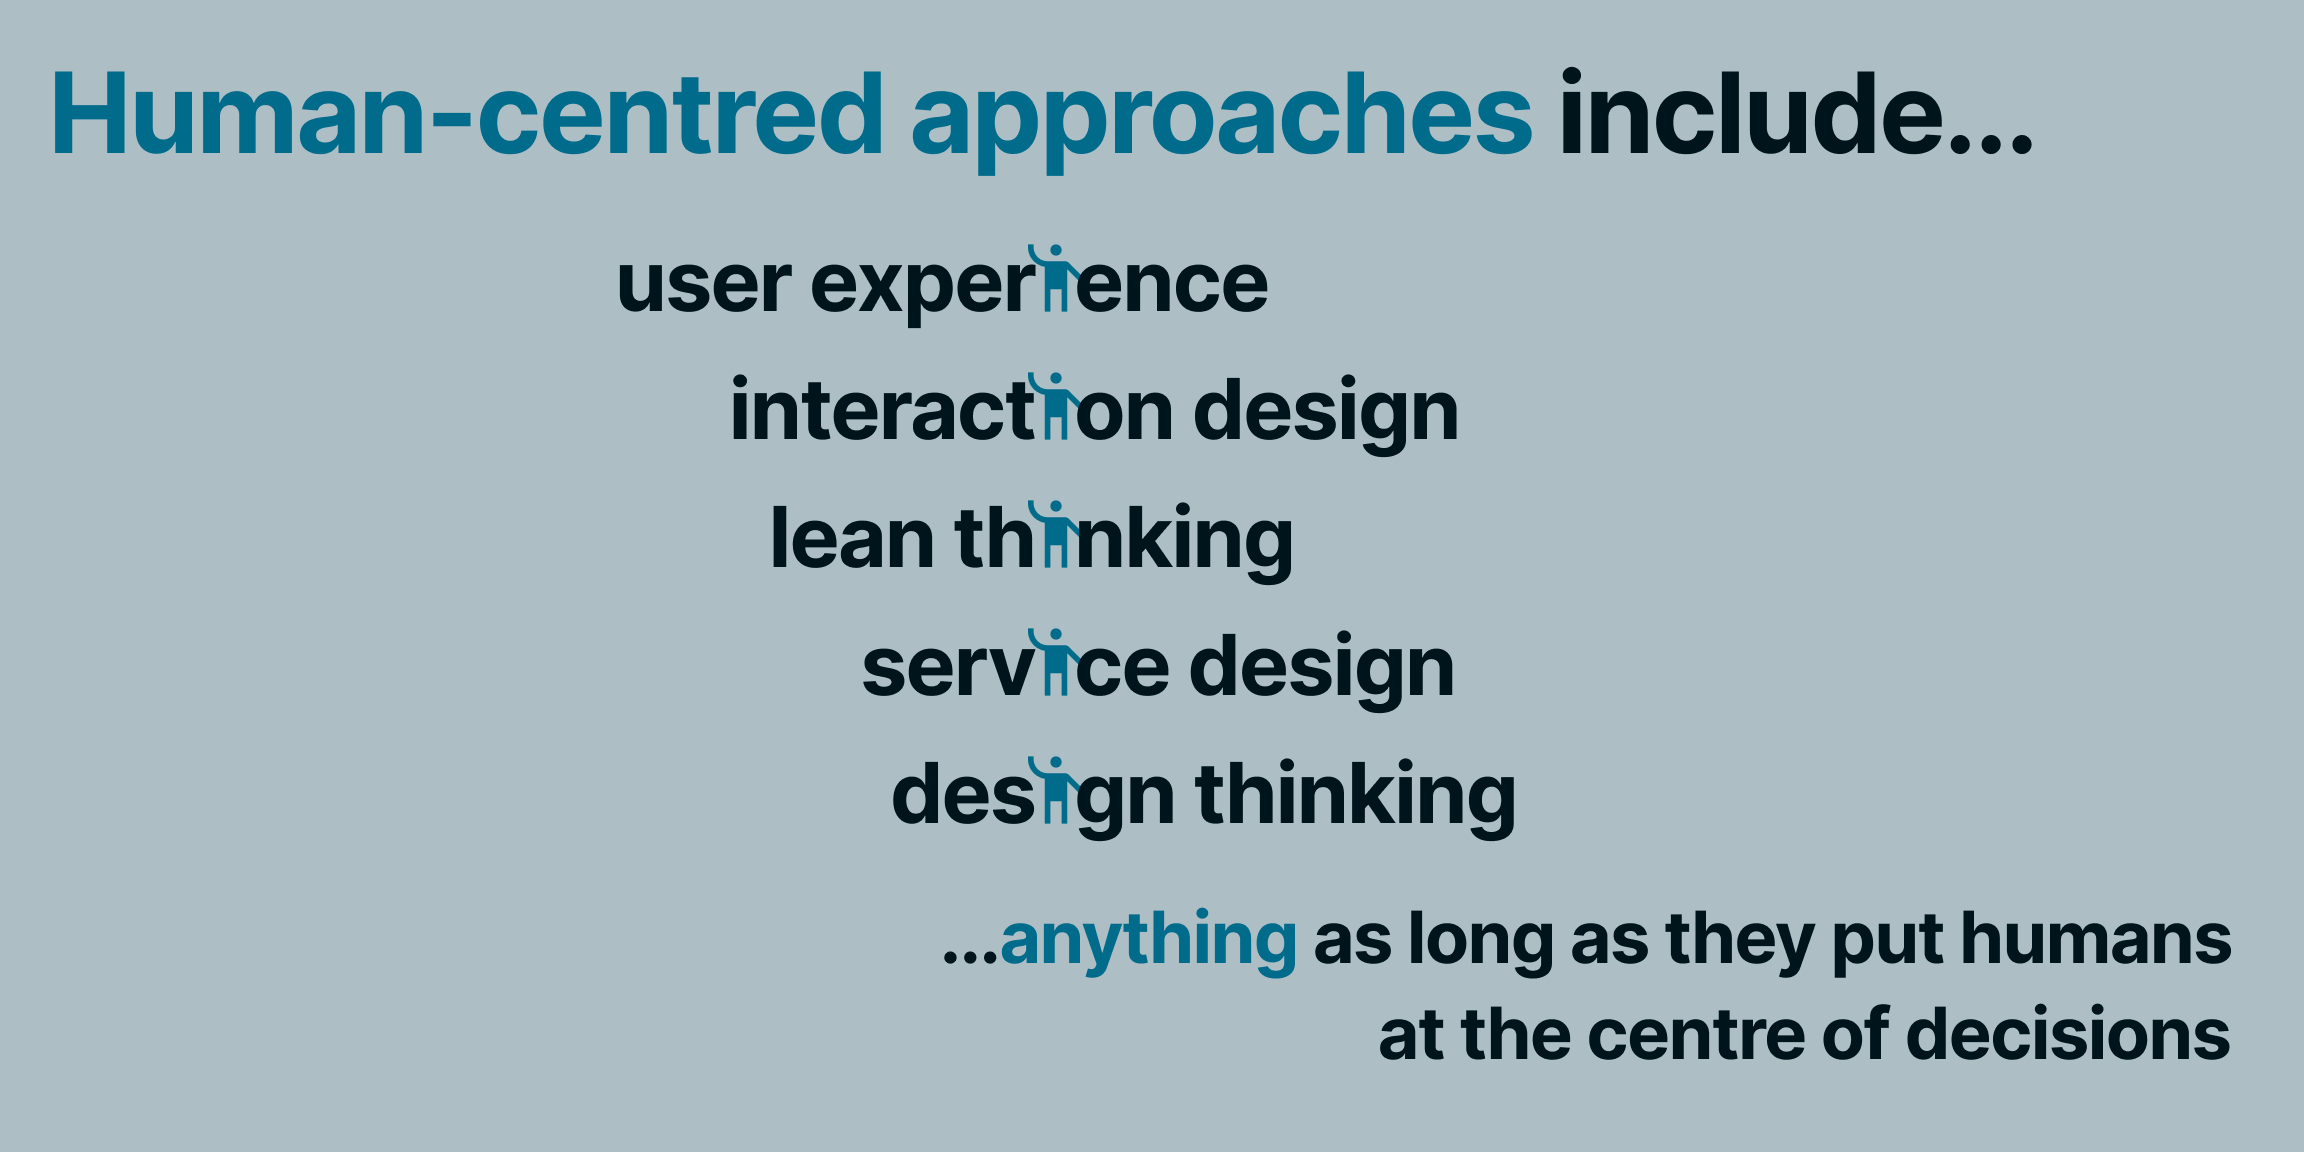 Human-centred approaches include... user experience, interaction design, lean thinking, service design, design thinking ...anything as long as they put humans at the centre of decisions